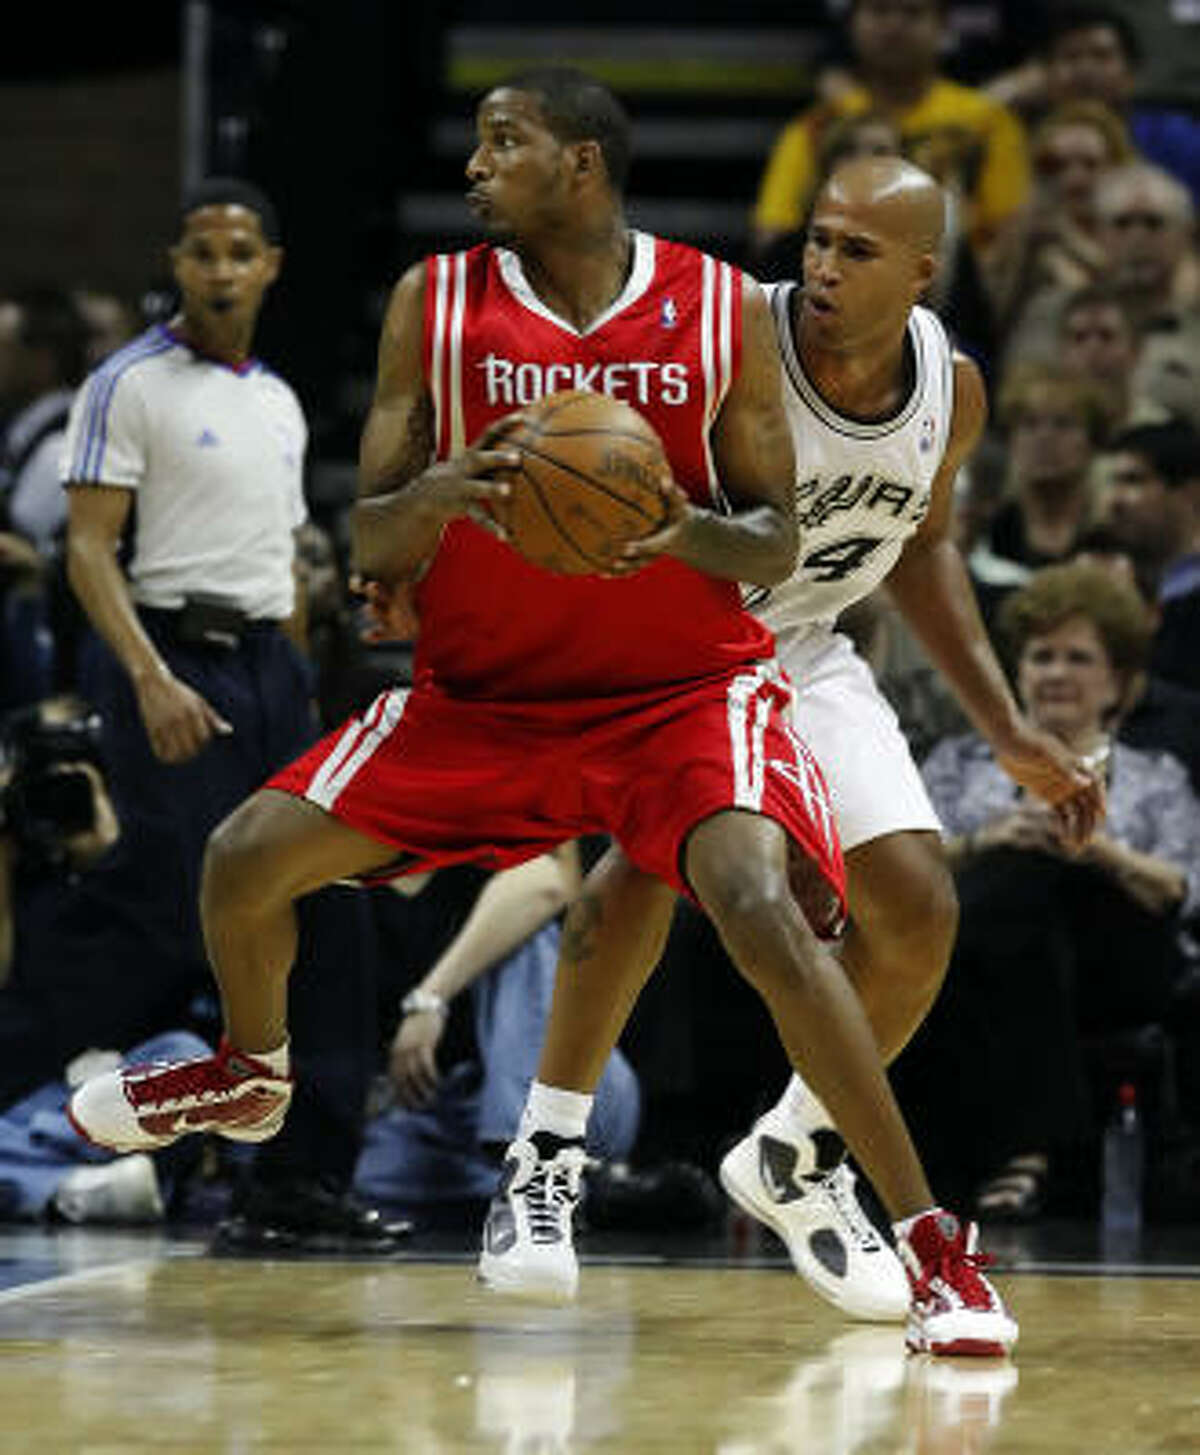 Trevor Ariza, acquired in free agency this offseason, scored nine points in his Rockets debut.